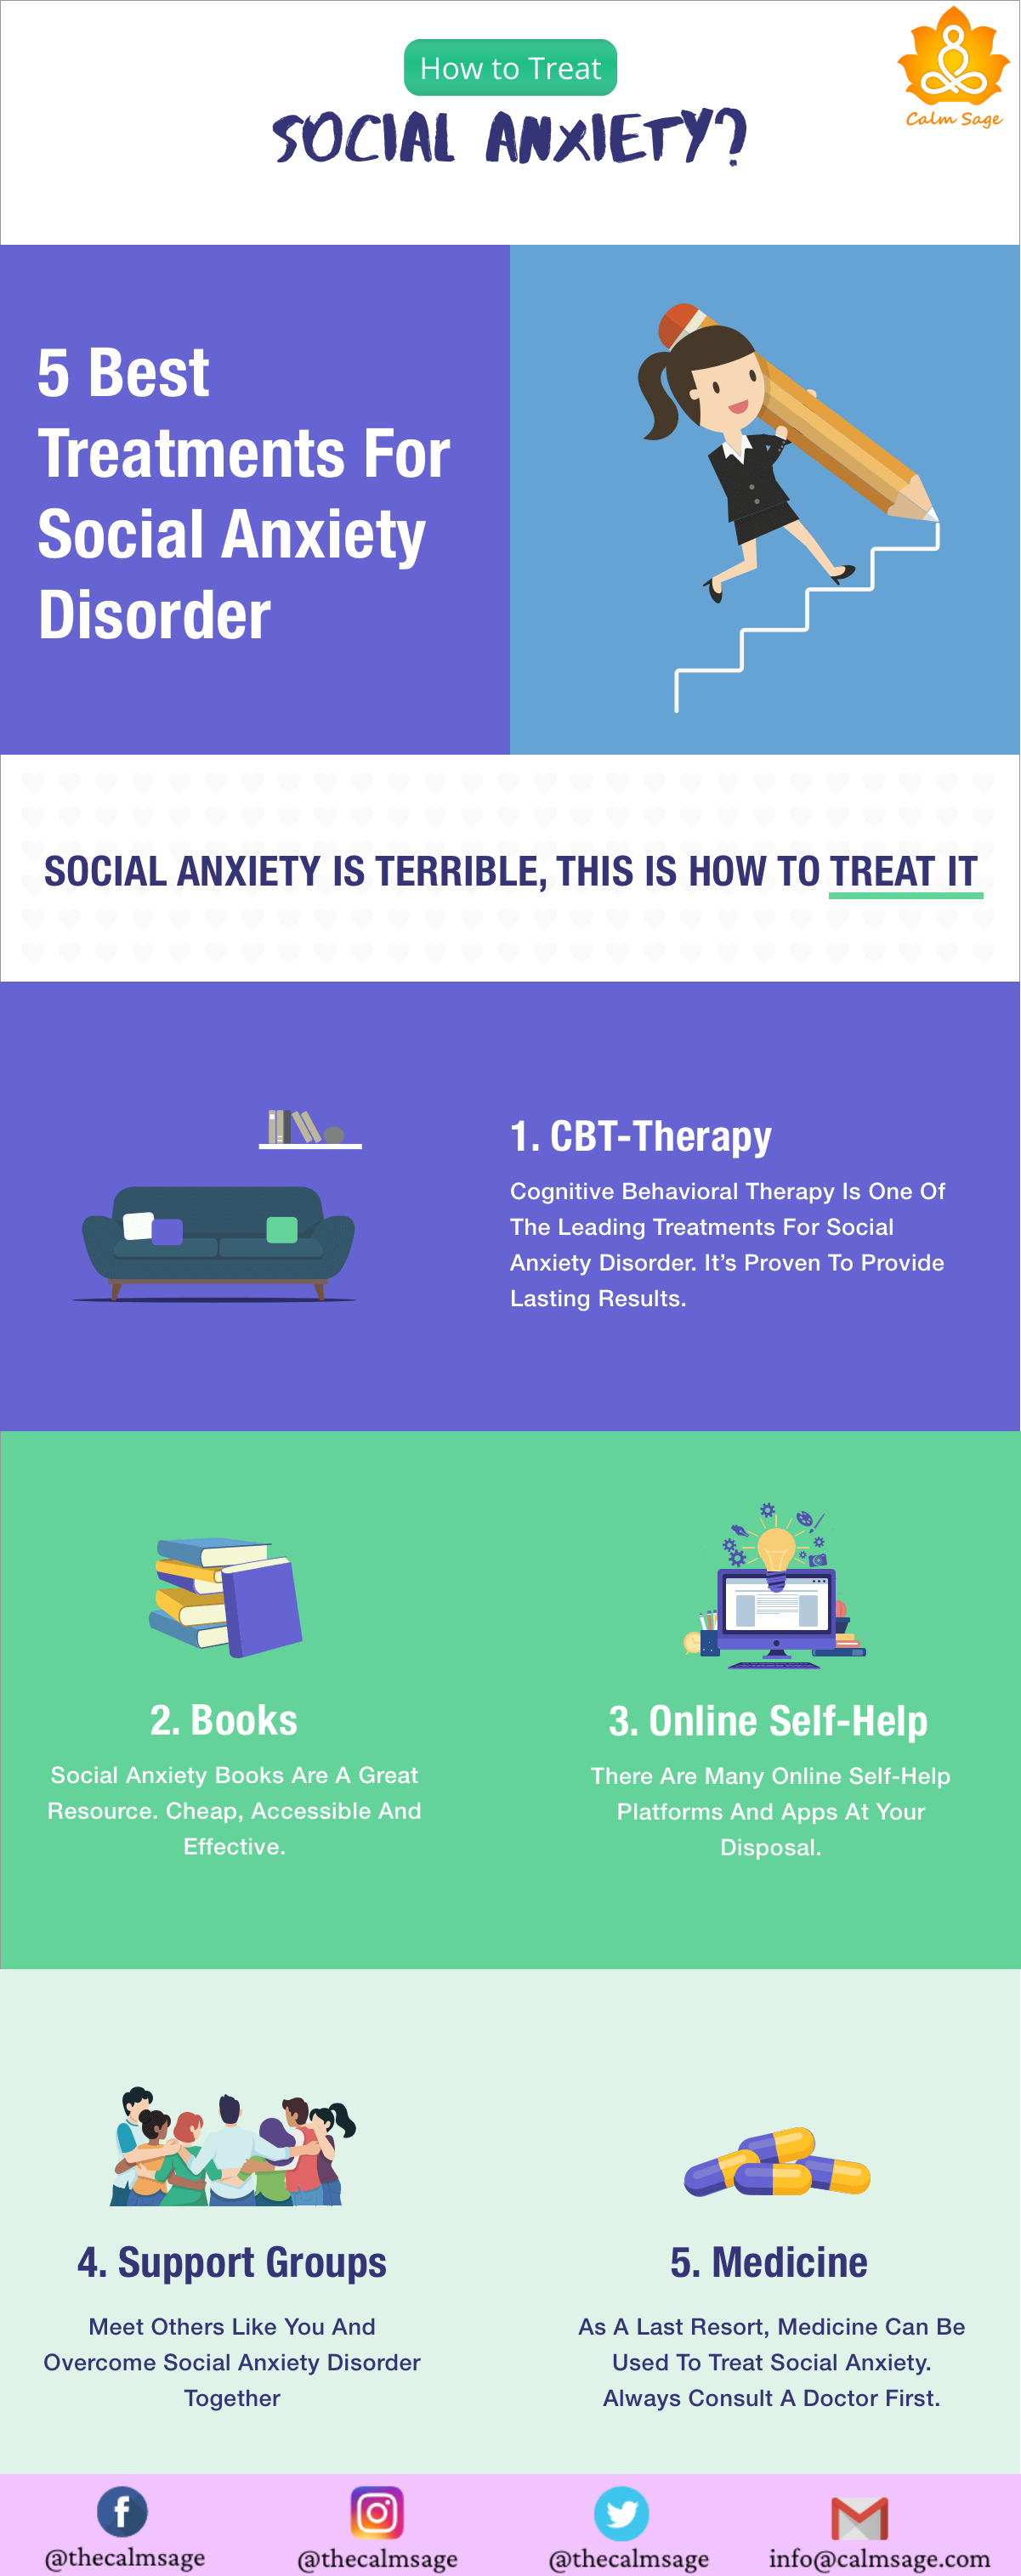 How to Treat Social Anxiety